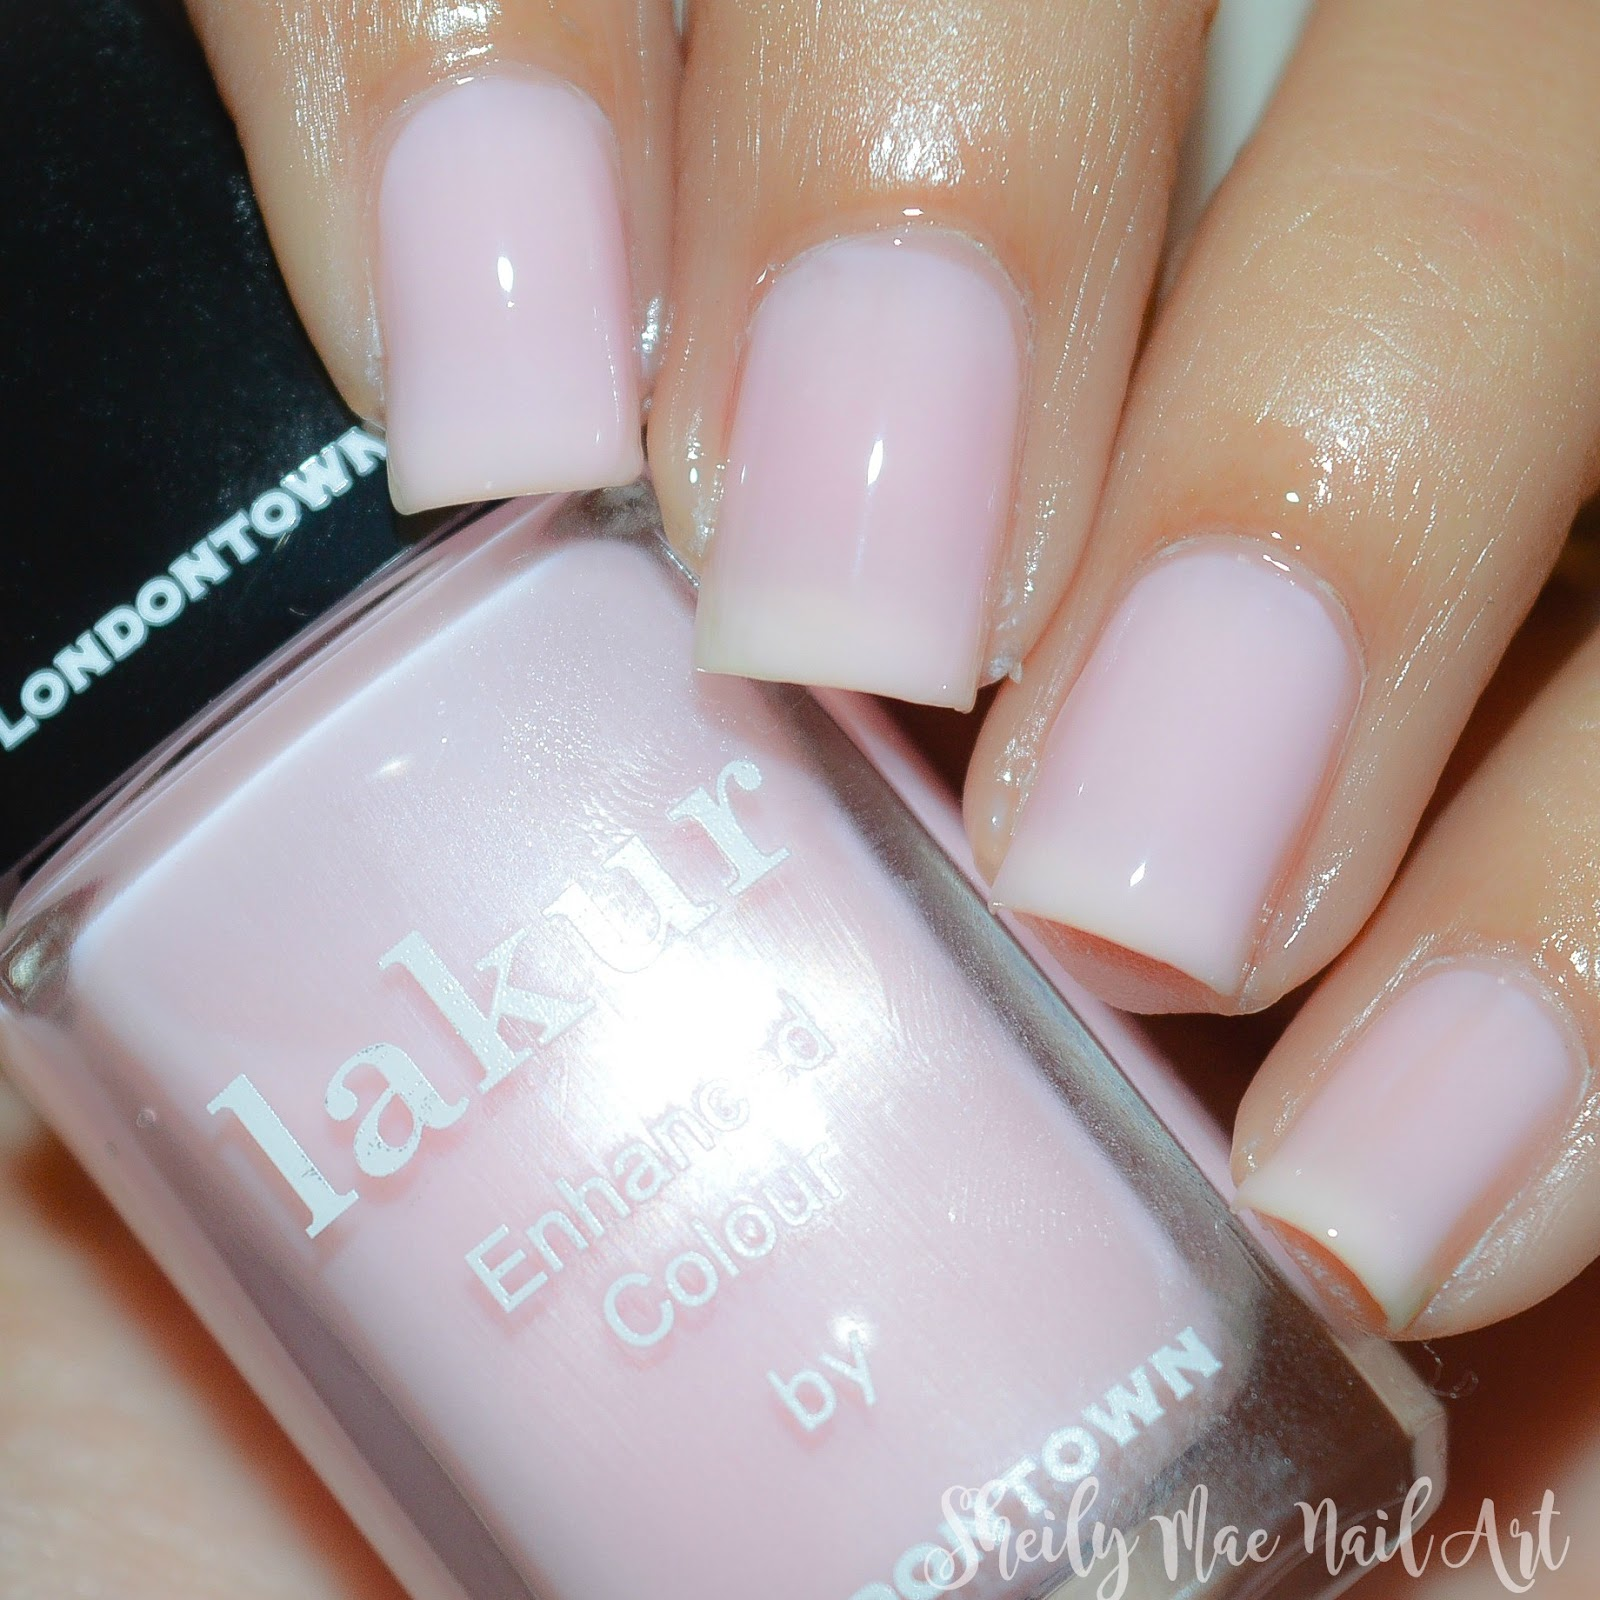 Londontown Lakur Nail Polish Swatches and Review - Sheily